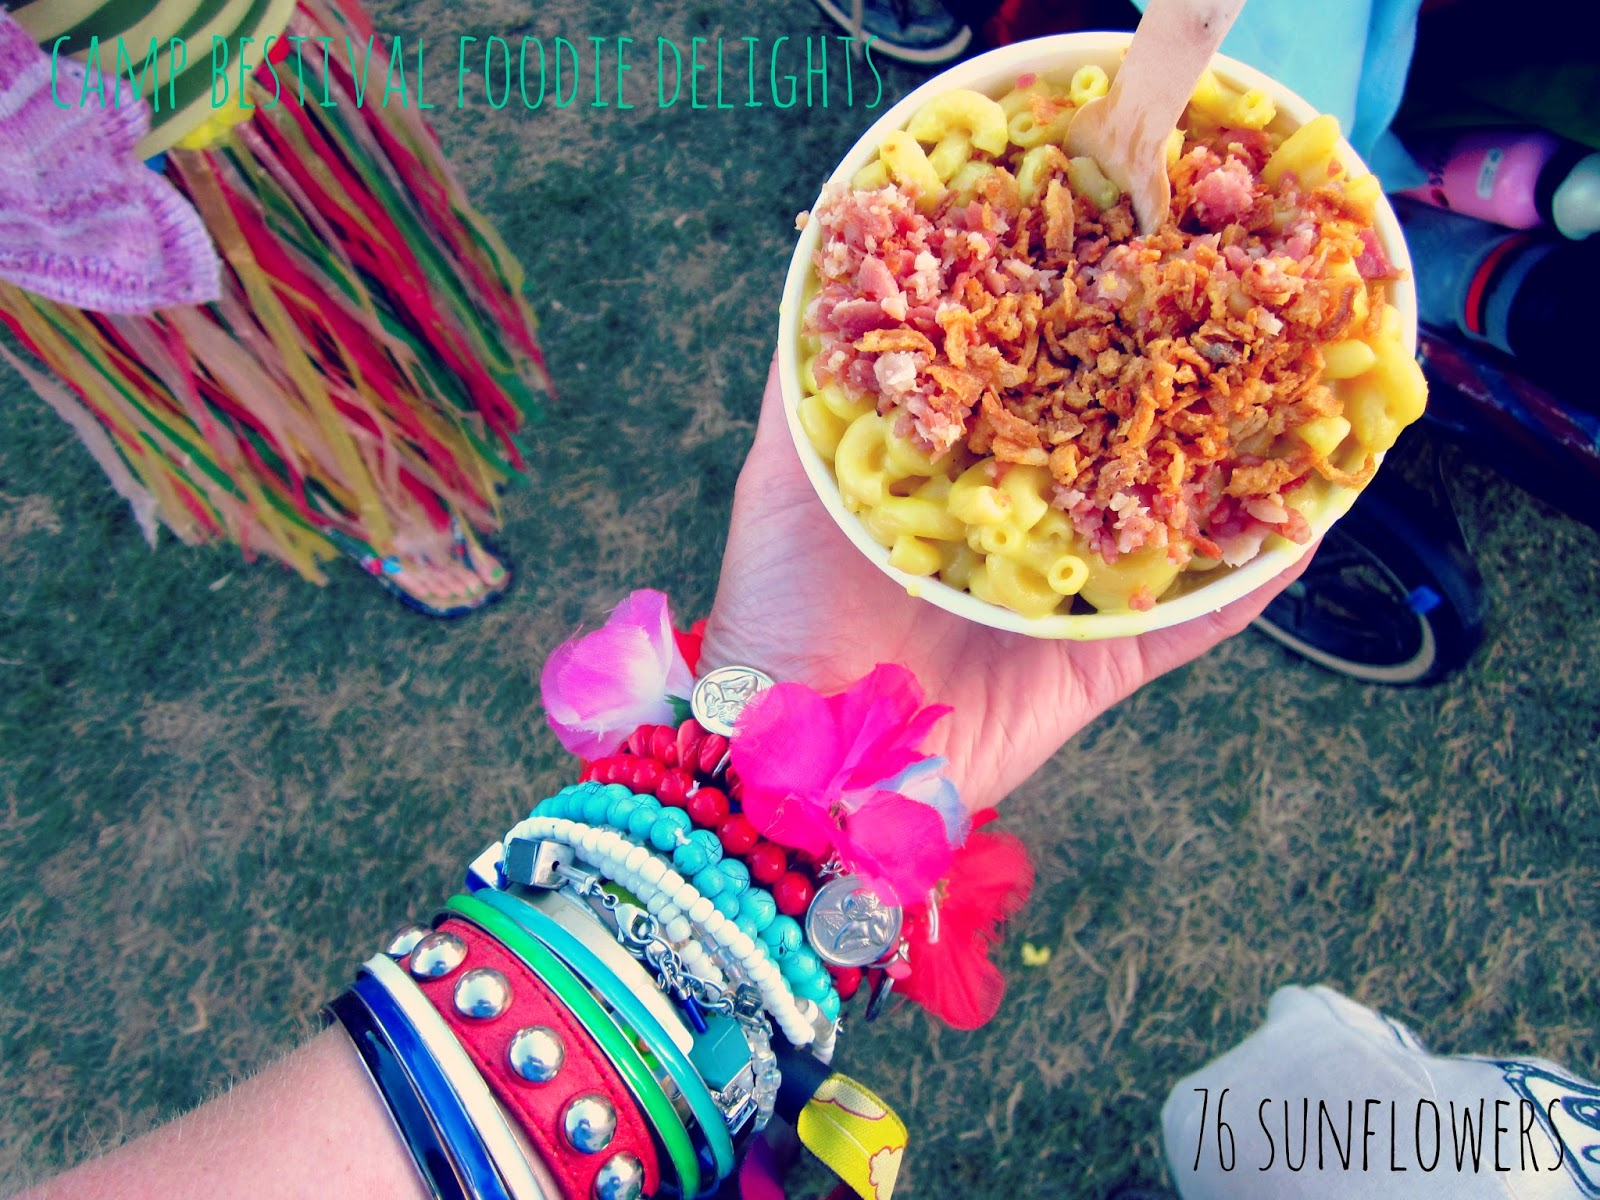 Camp Bestival Foodie Delights // 76sunflowers